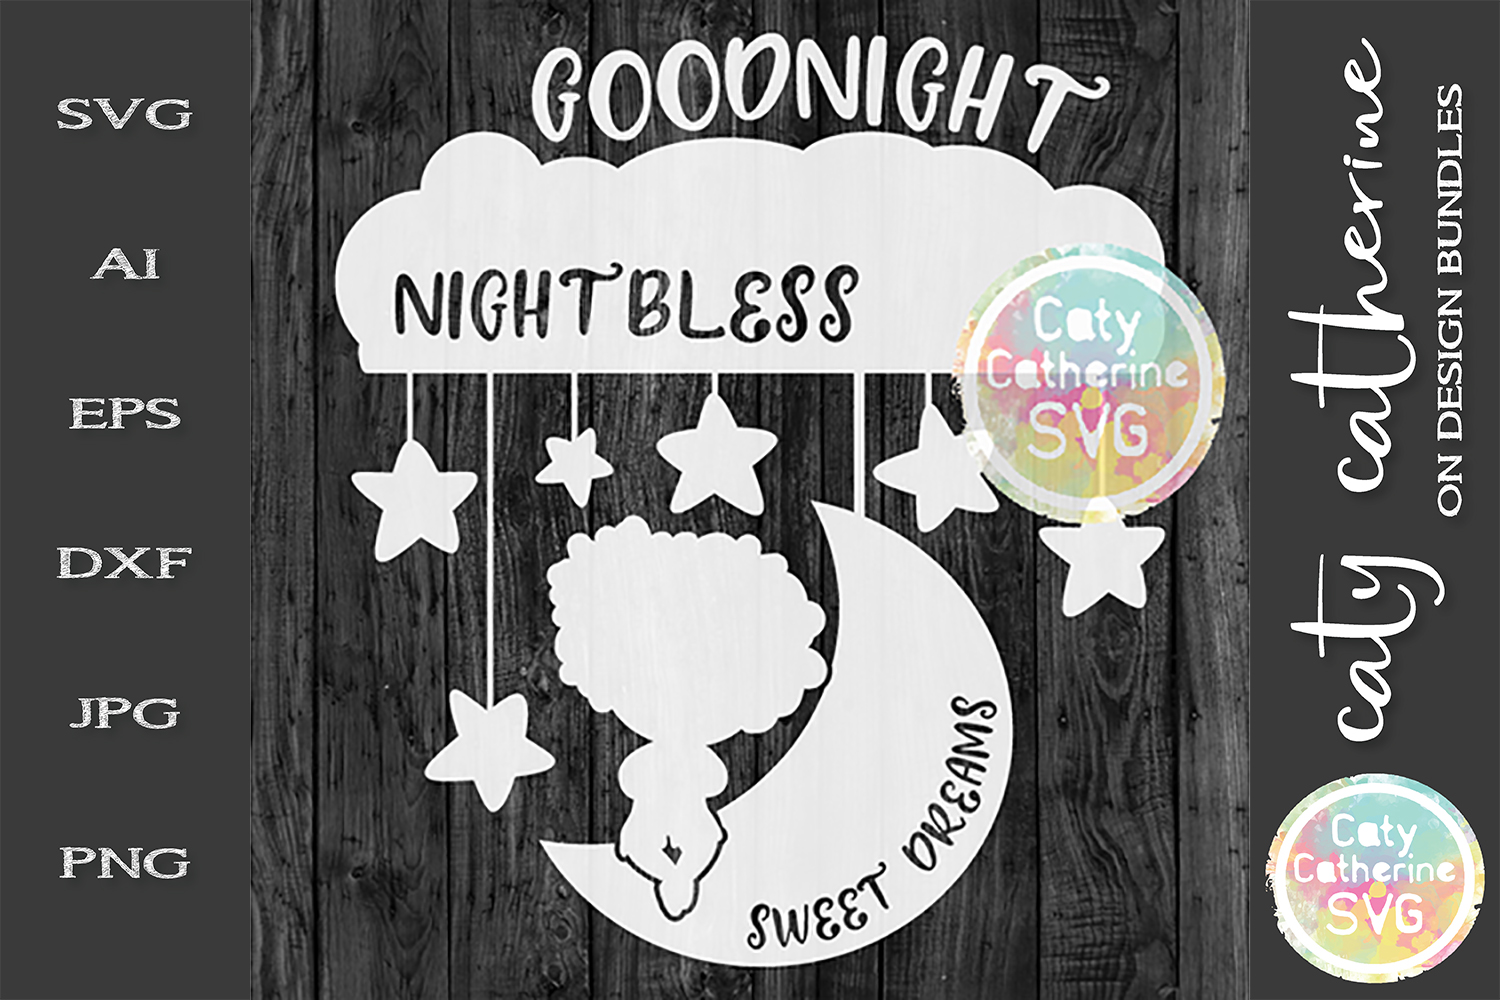 Goodnight Nightbless Sweet Dreams SVG Cut File example image 1